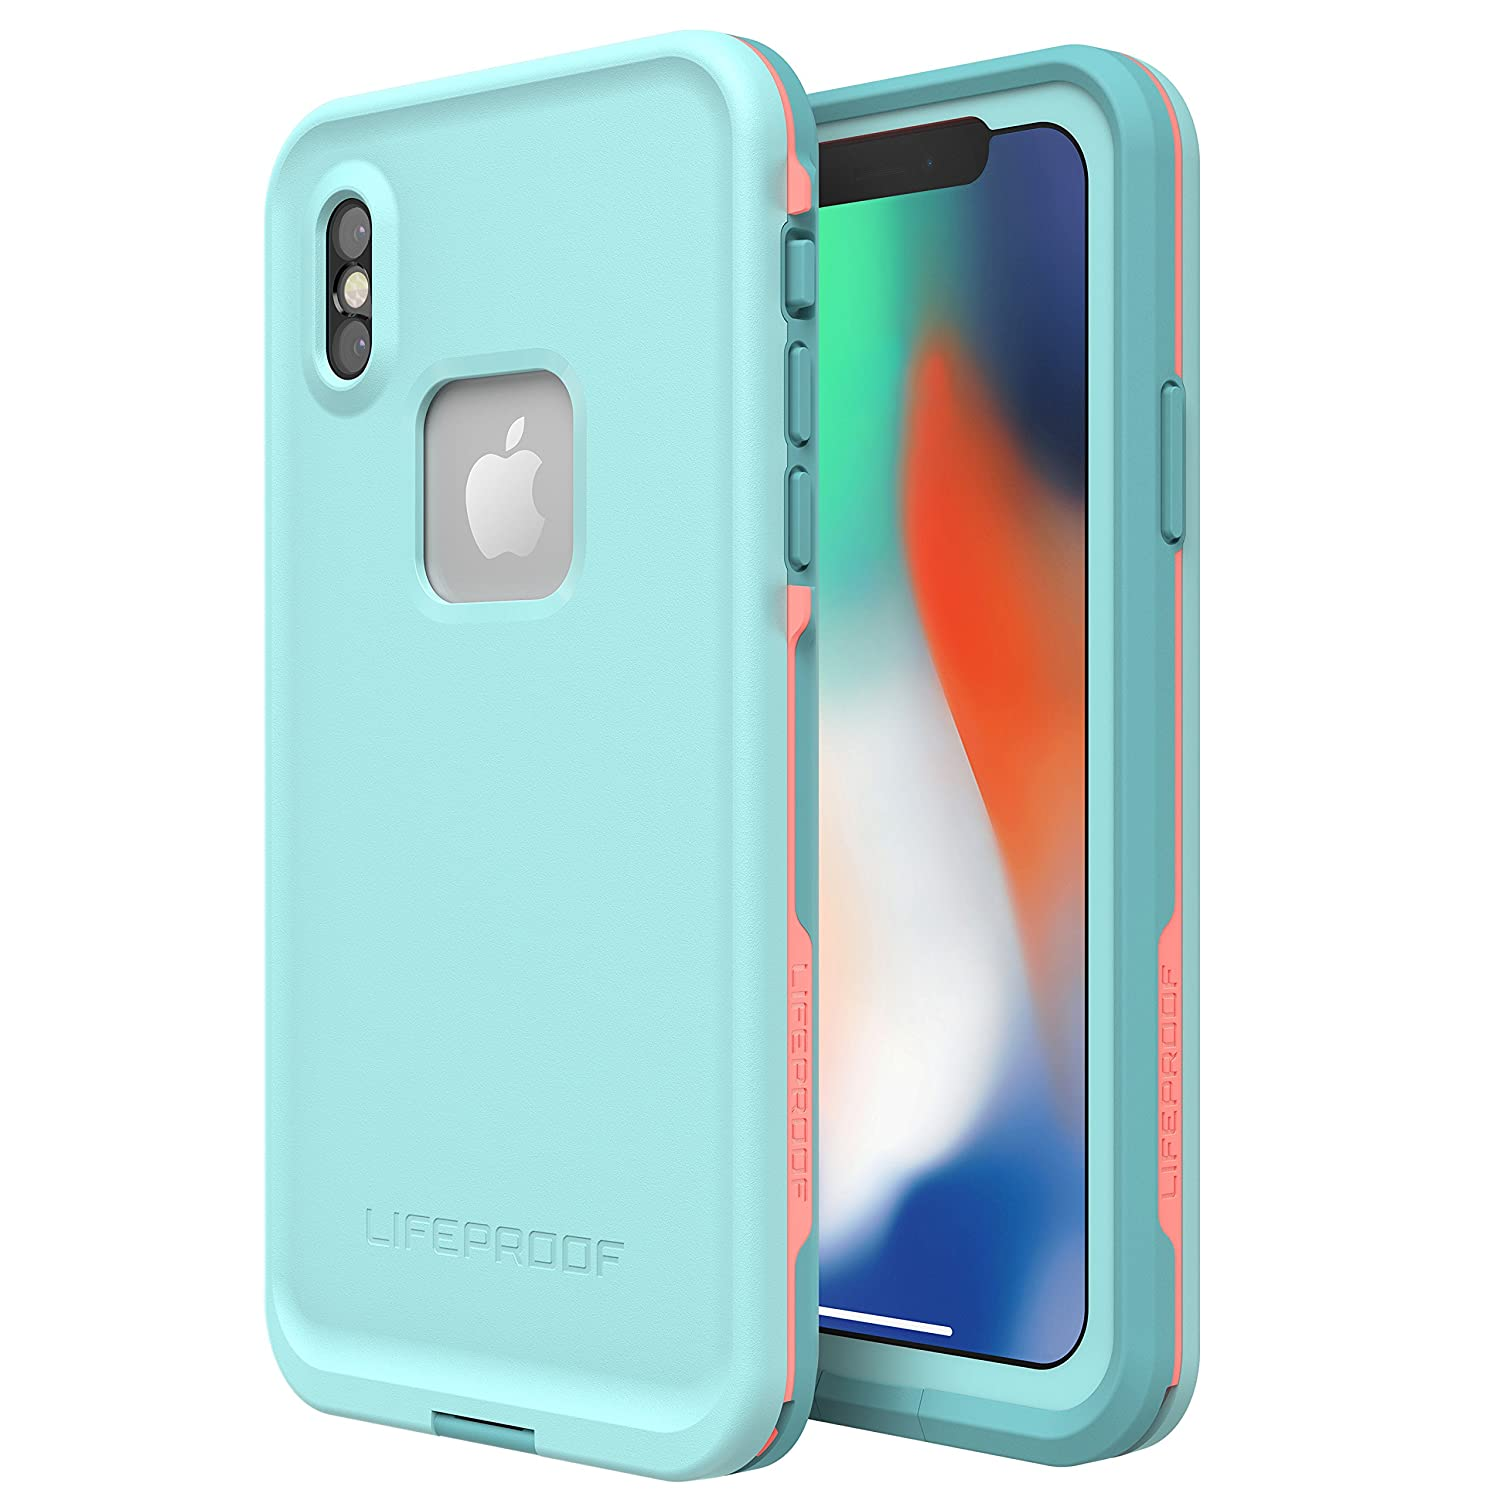 Lifeproof FRĒ Series Waterproof Case for iPhone X (ONLY) - Retail Packaging - Wipeout (Blue Tint/Fusion Coral/Mandalay Bay)